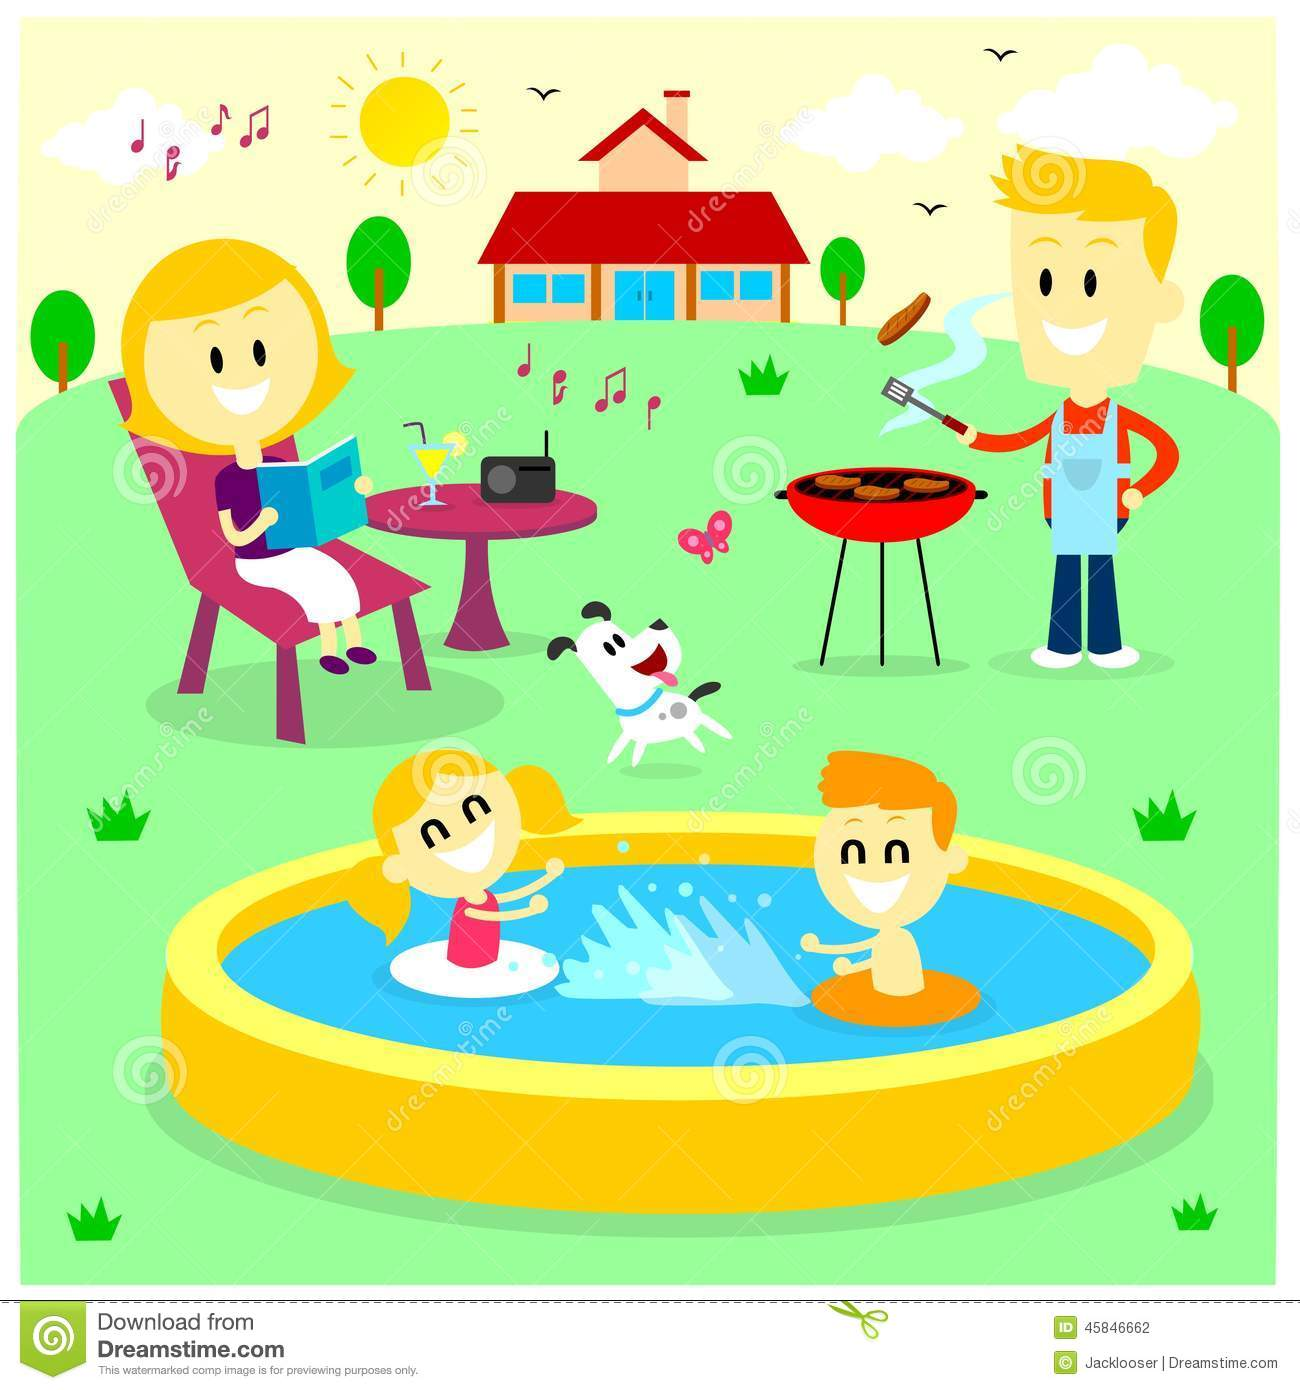 family fun time at the backyard house stock vector image 45846662